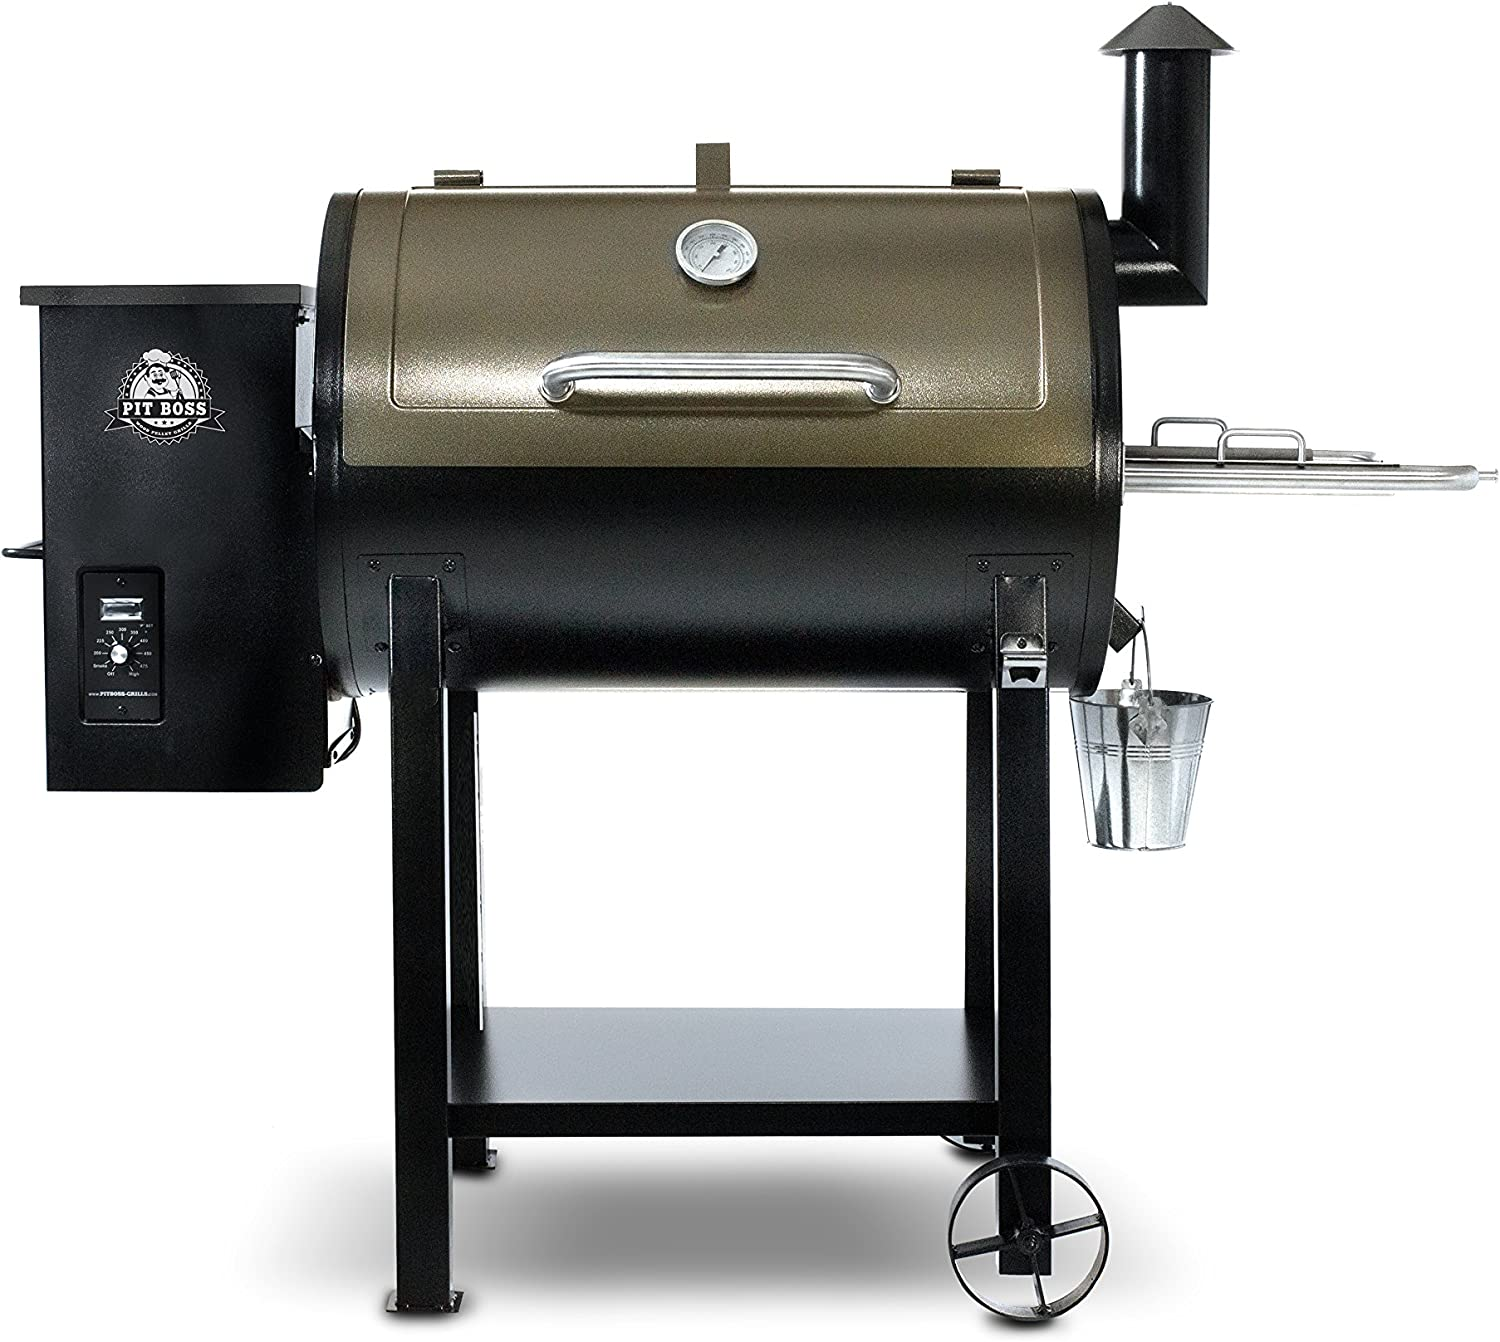 PIT-BOSS-Grills-72820-Deluxe-Wood-Pellet-Grill